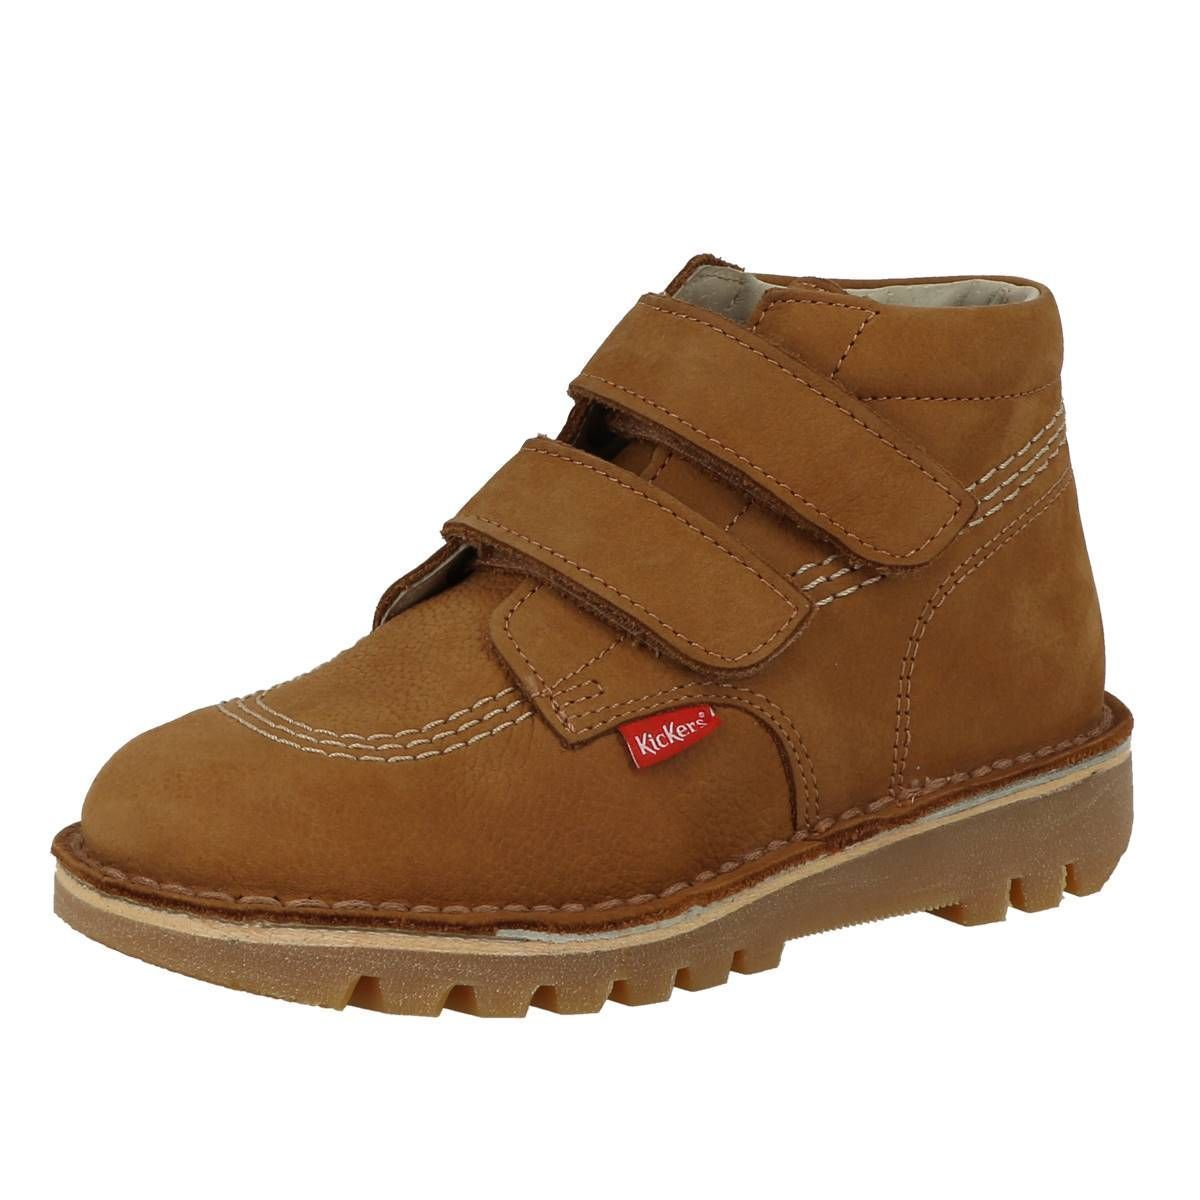 Kickers fille neovelcro camel1157801_2